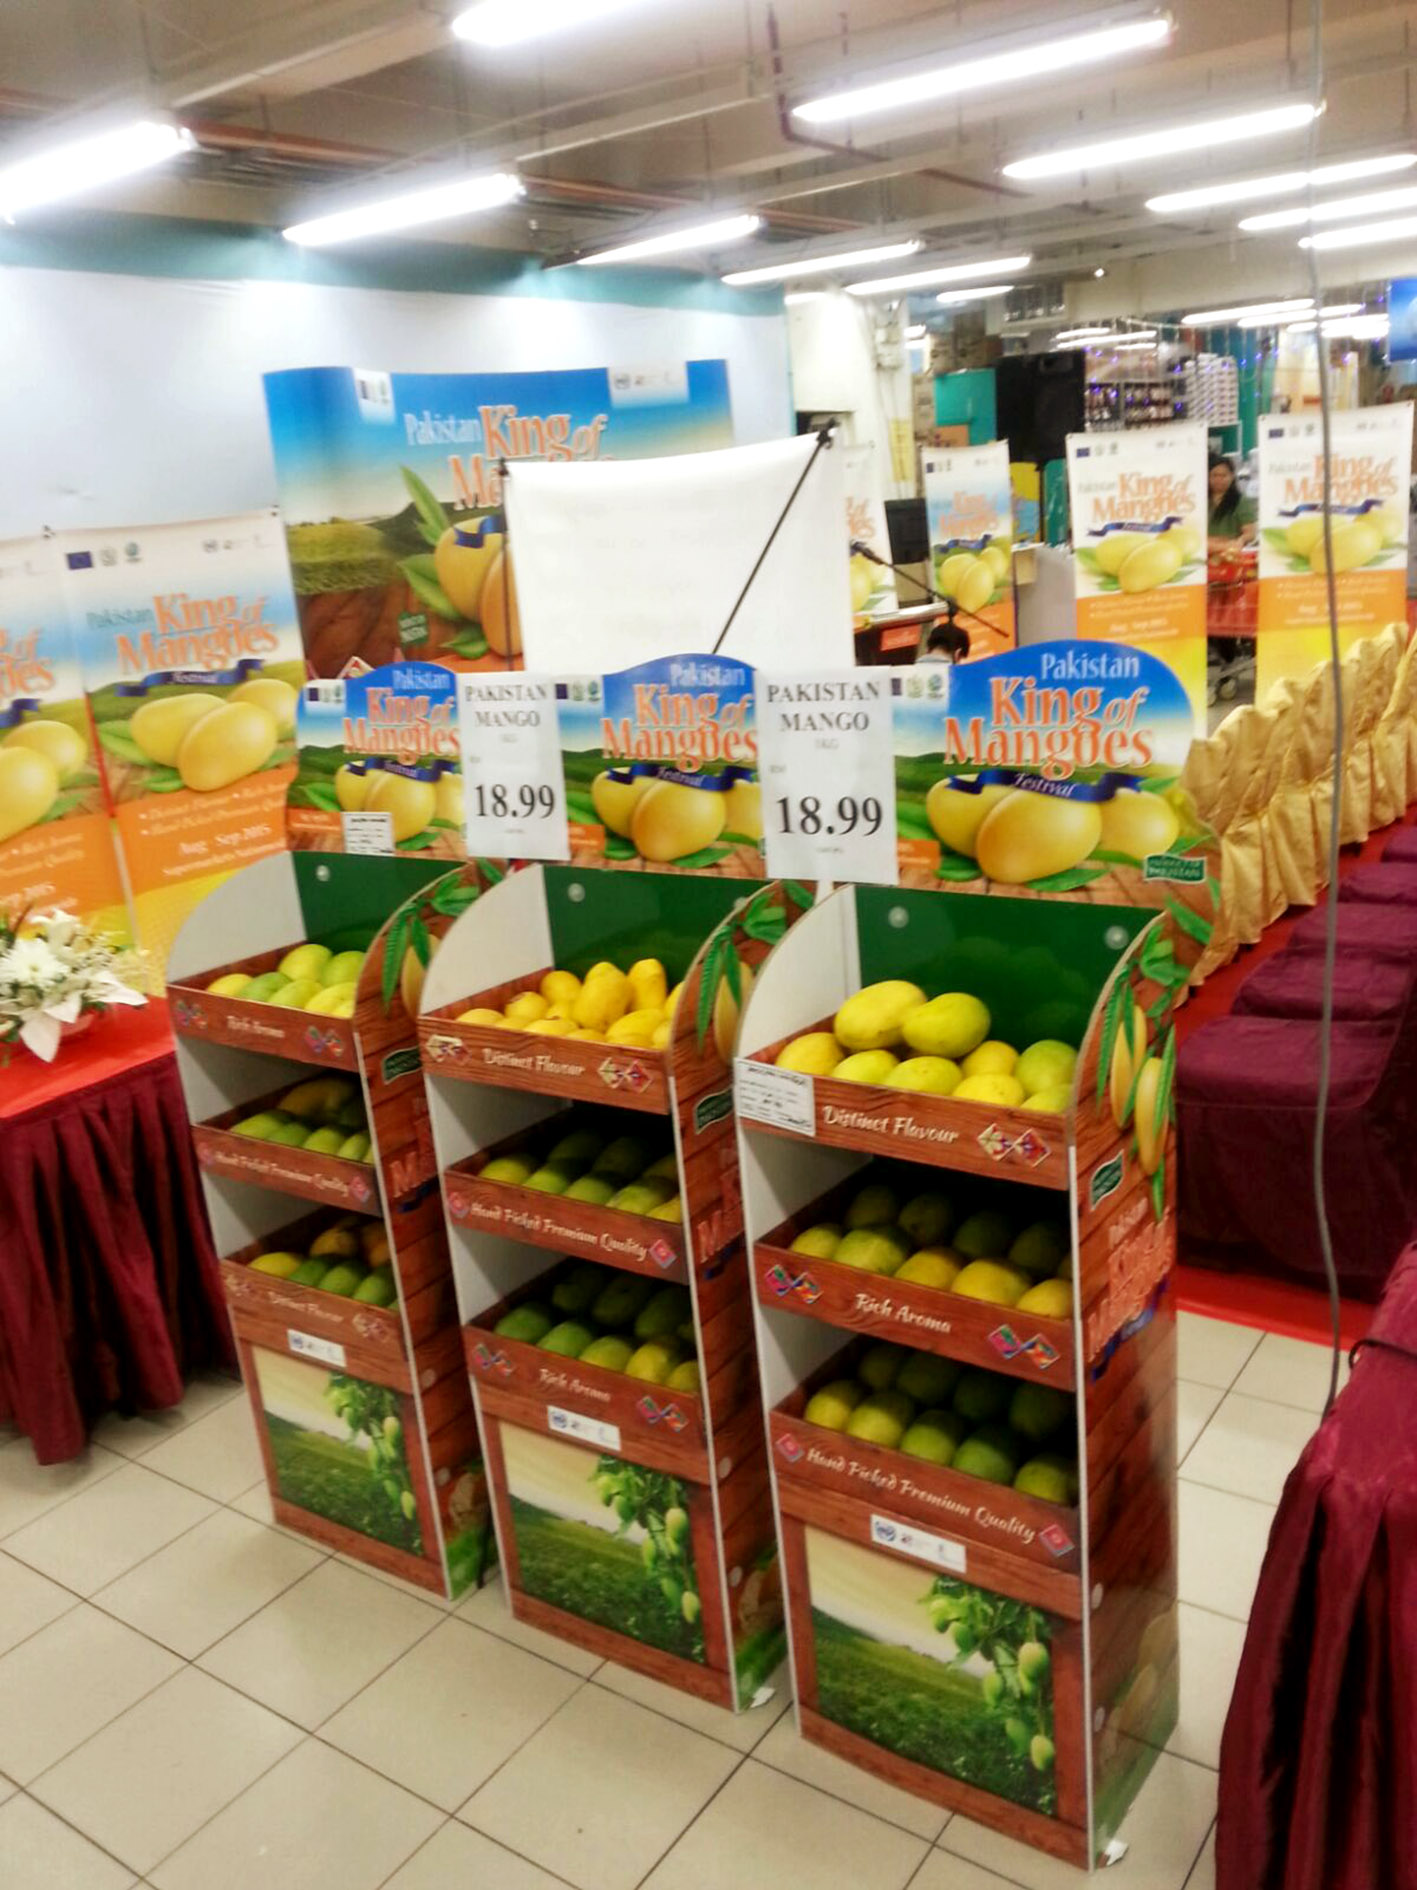 Setup of the pavilion at the Pakistan King of Mangoes Festival at the Sunshine Square Mall in Penang, Malaysia.